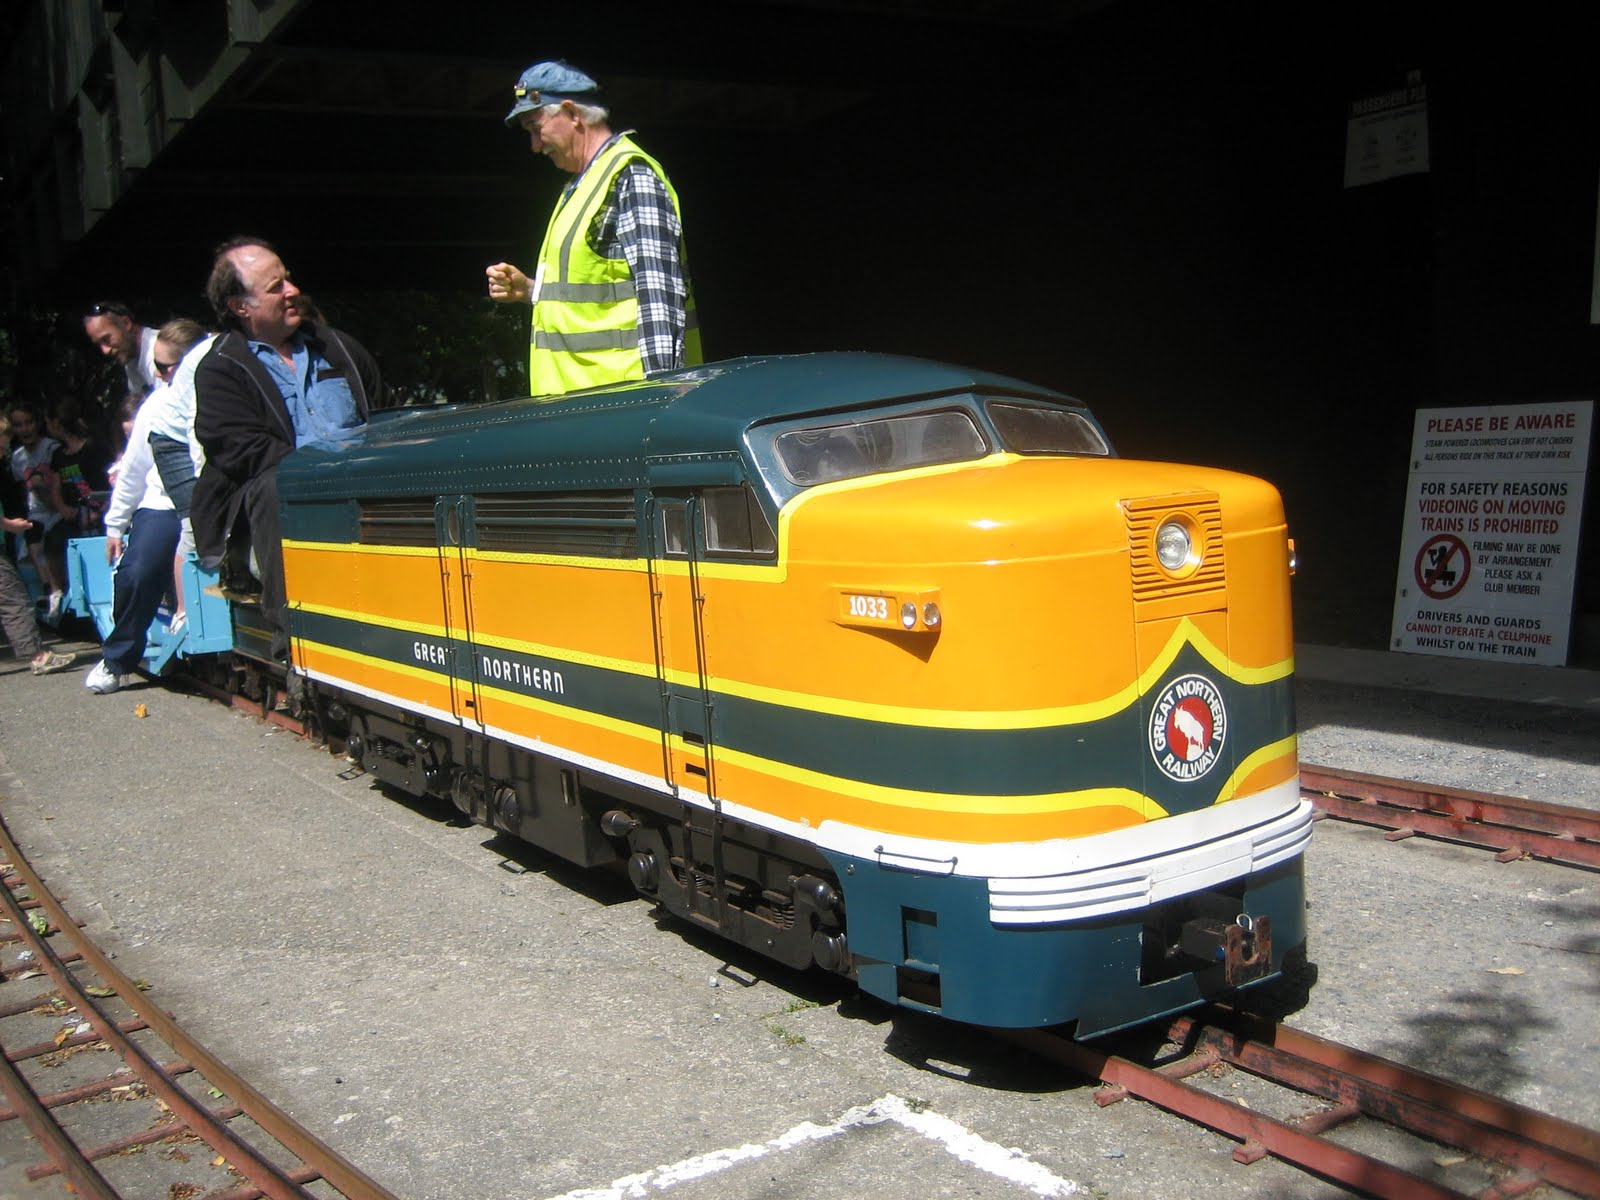 The 20 Best Ideas for Backyard Trains for Sale - Best ...